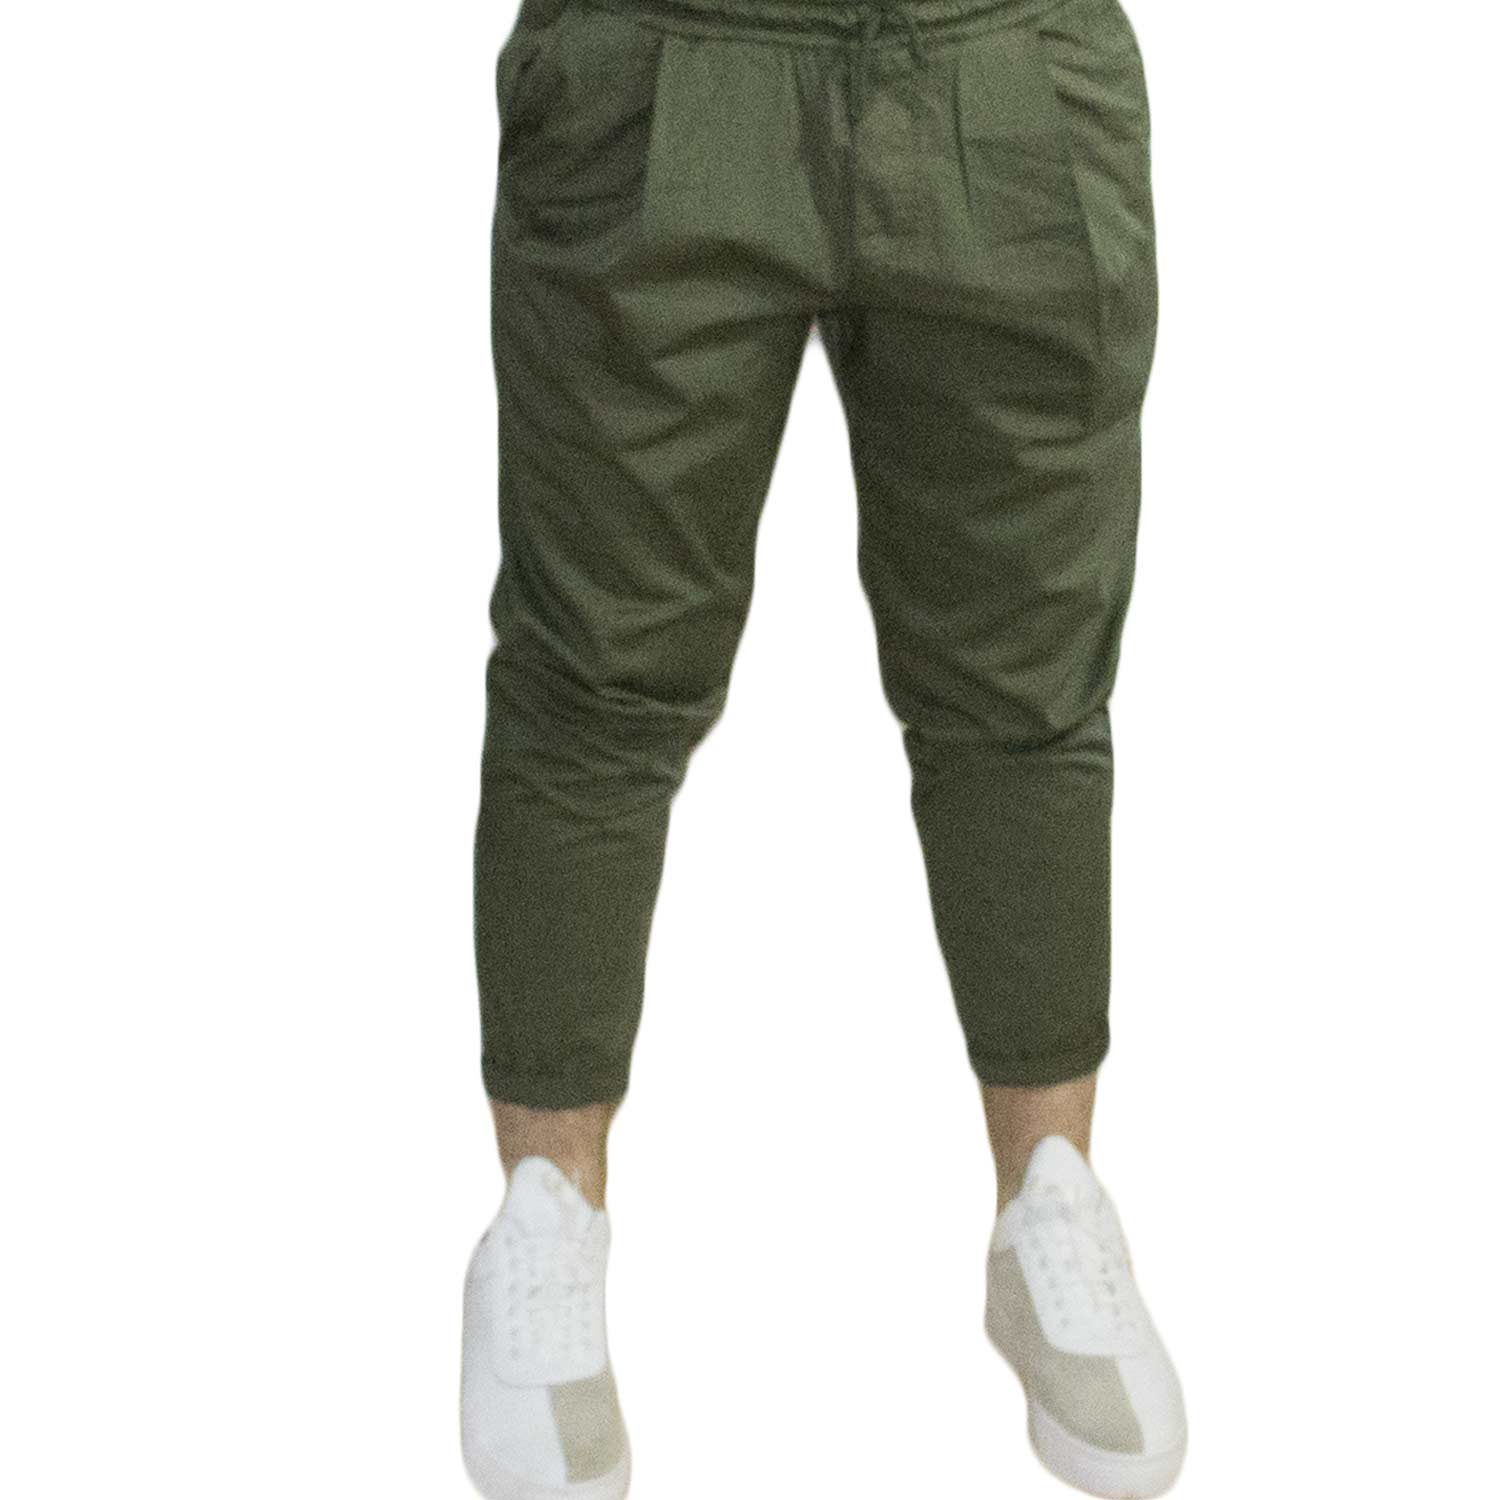 Pantaloni chino cropped art 8734 military green comodo.